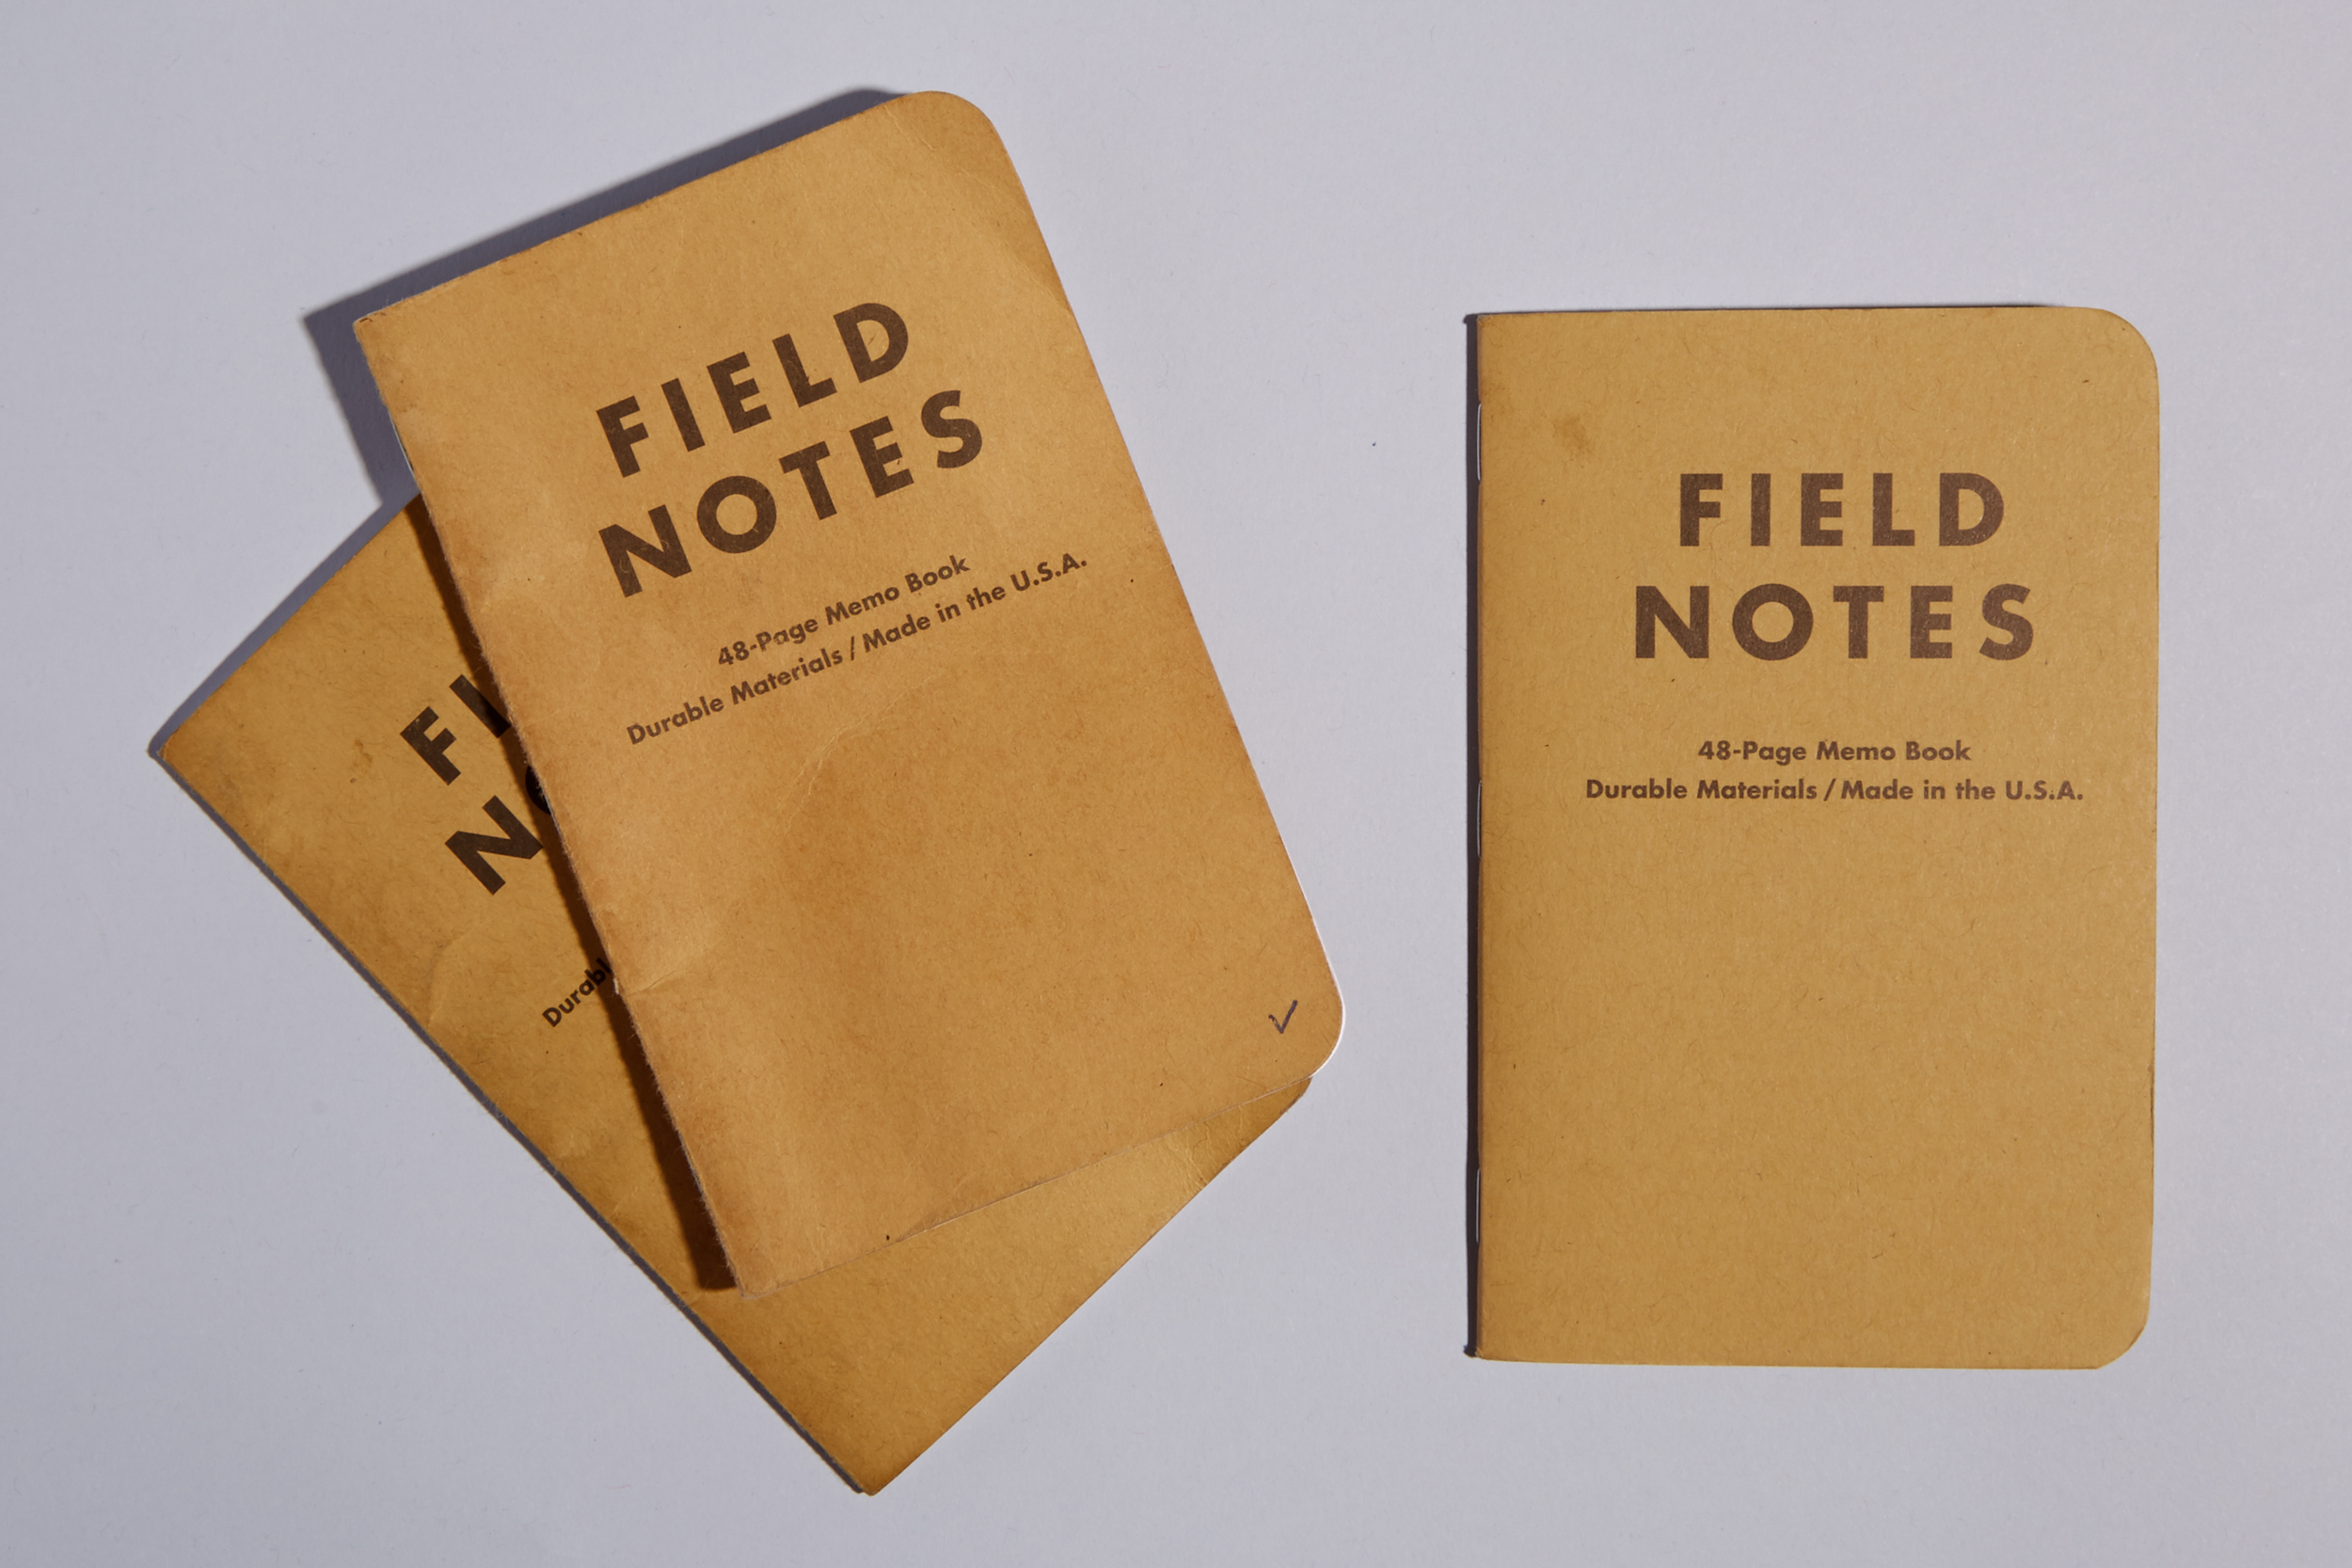 Field Notes. The best memo books around.